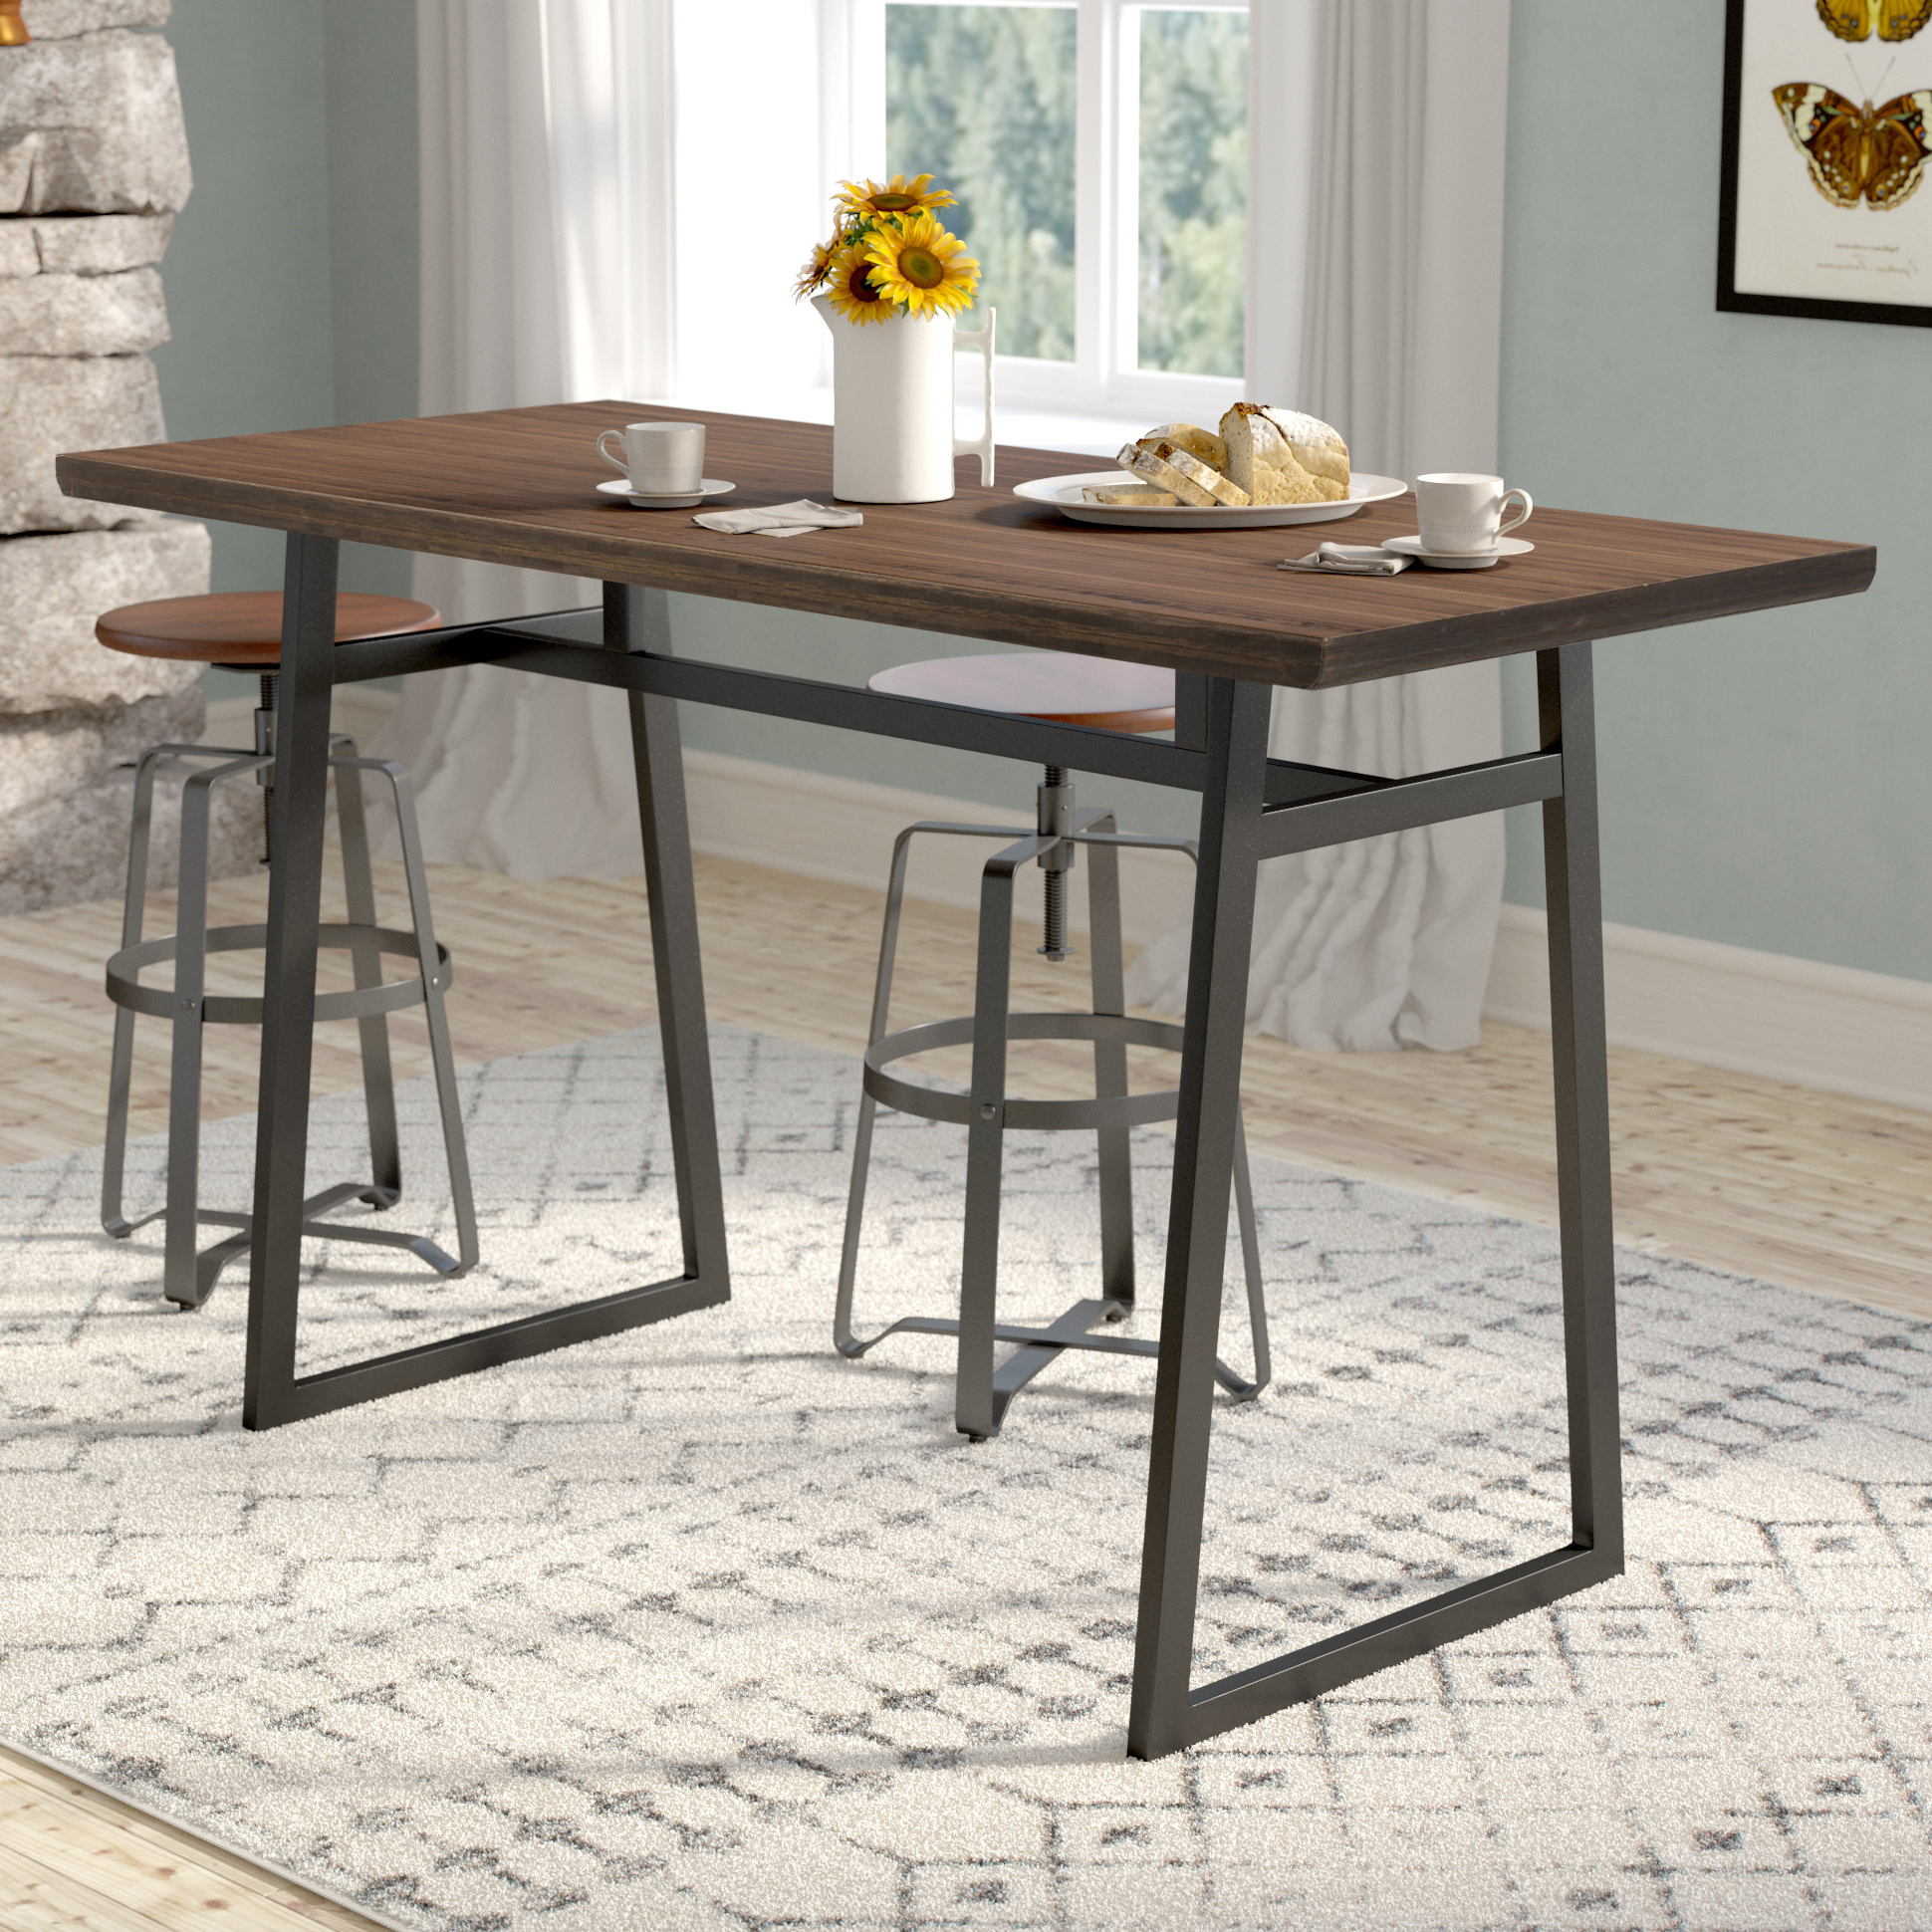 Winsted 4 Piece Counter Height Dining Sets Regarding Current Kitchen Table Counter – Home Decor Photos Gallery (View 4 of 20)